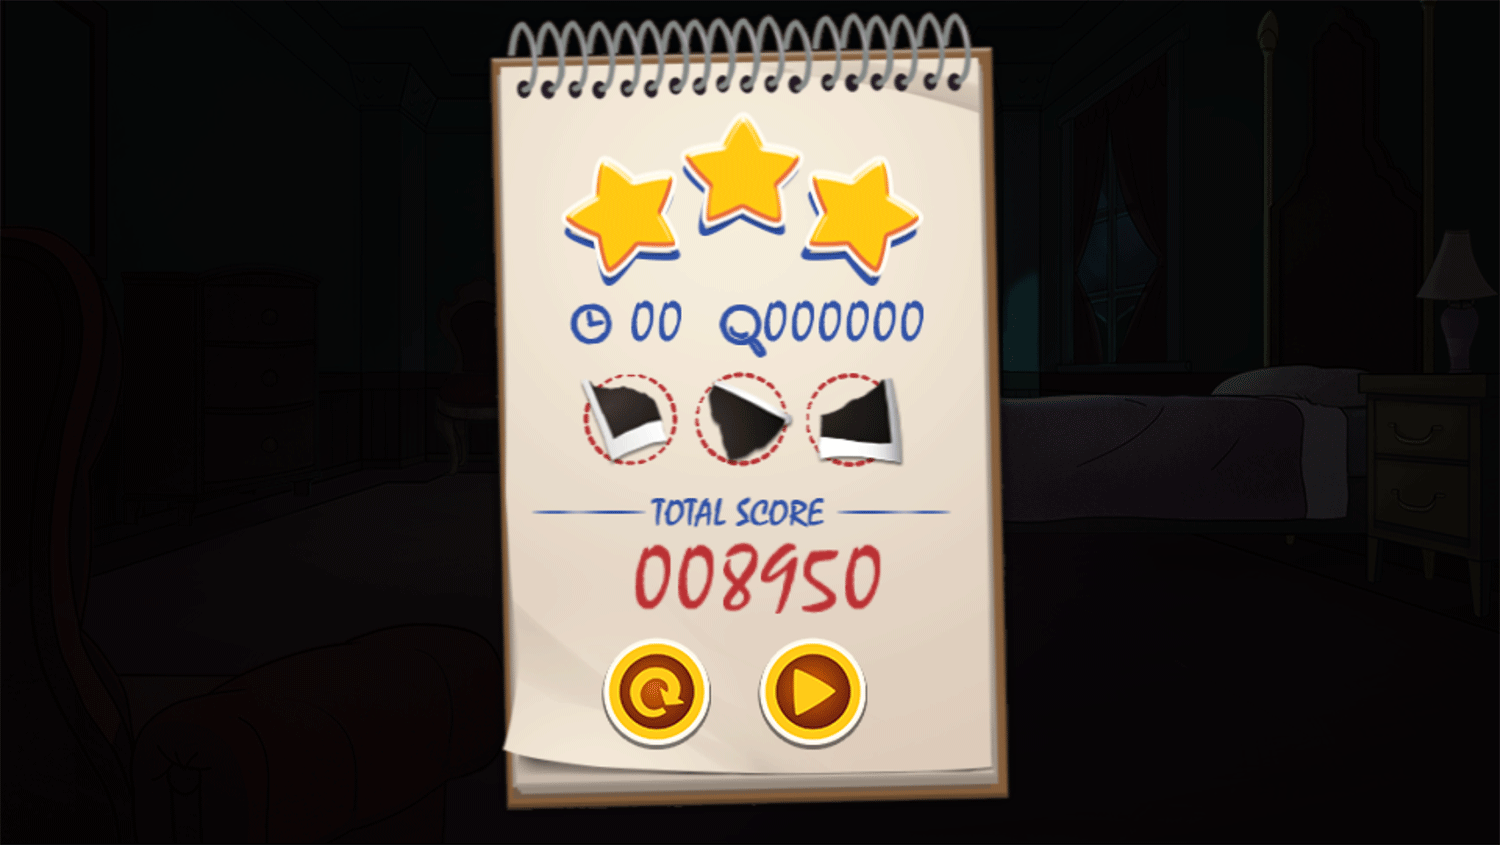 Be Cool Scooby Doo the Mysterious Mansion Score Screenshot.